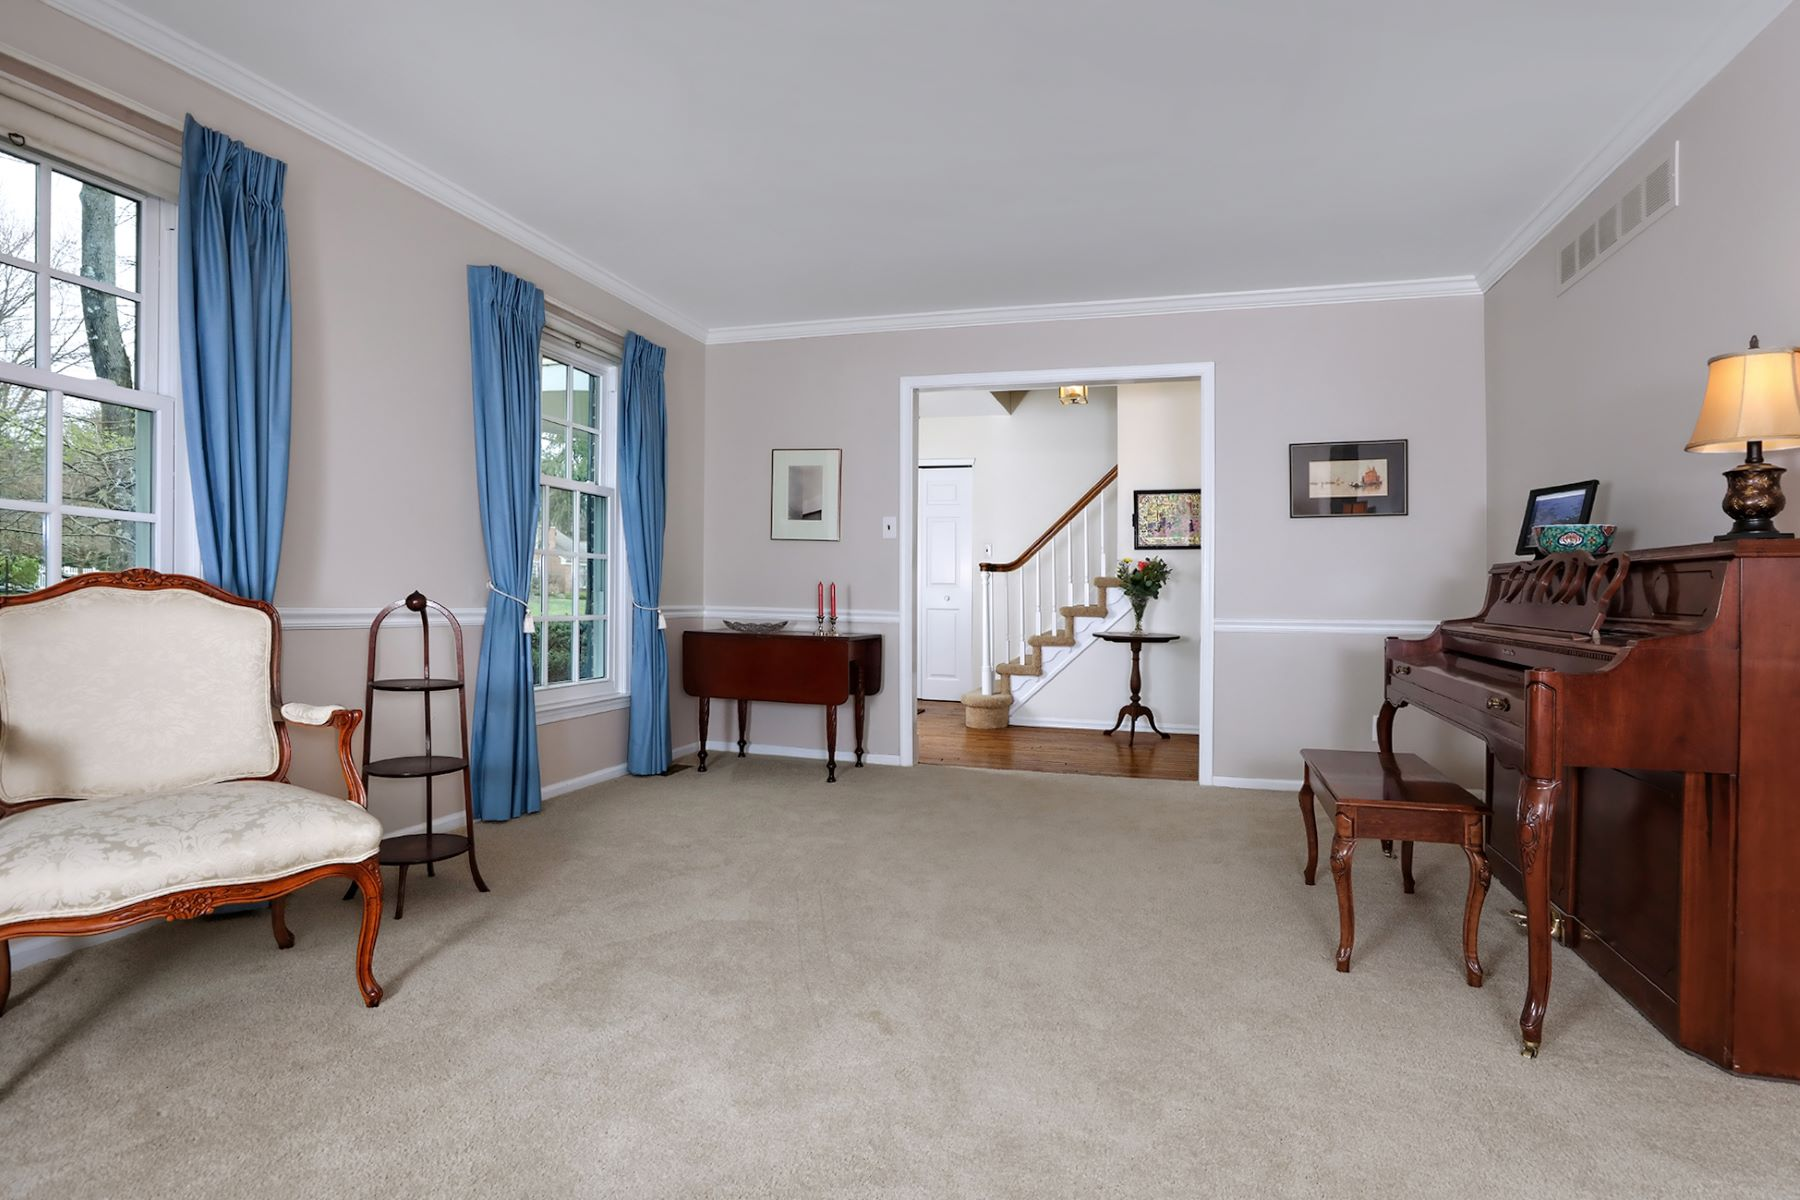 Additional photo for property listing at Lawrence Colonial Is the Perfect Place to Unwind 24 Tracey Drive, Lawrenceville, New Jersey 08648 United States